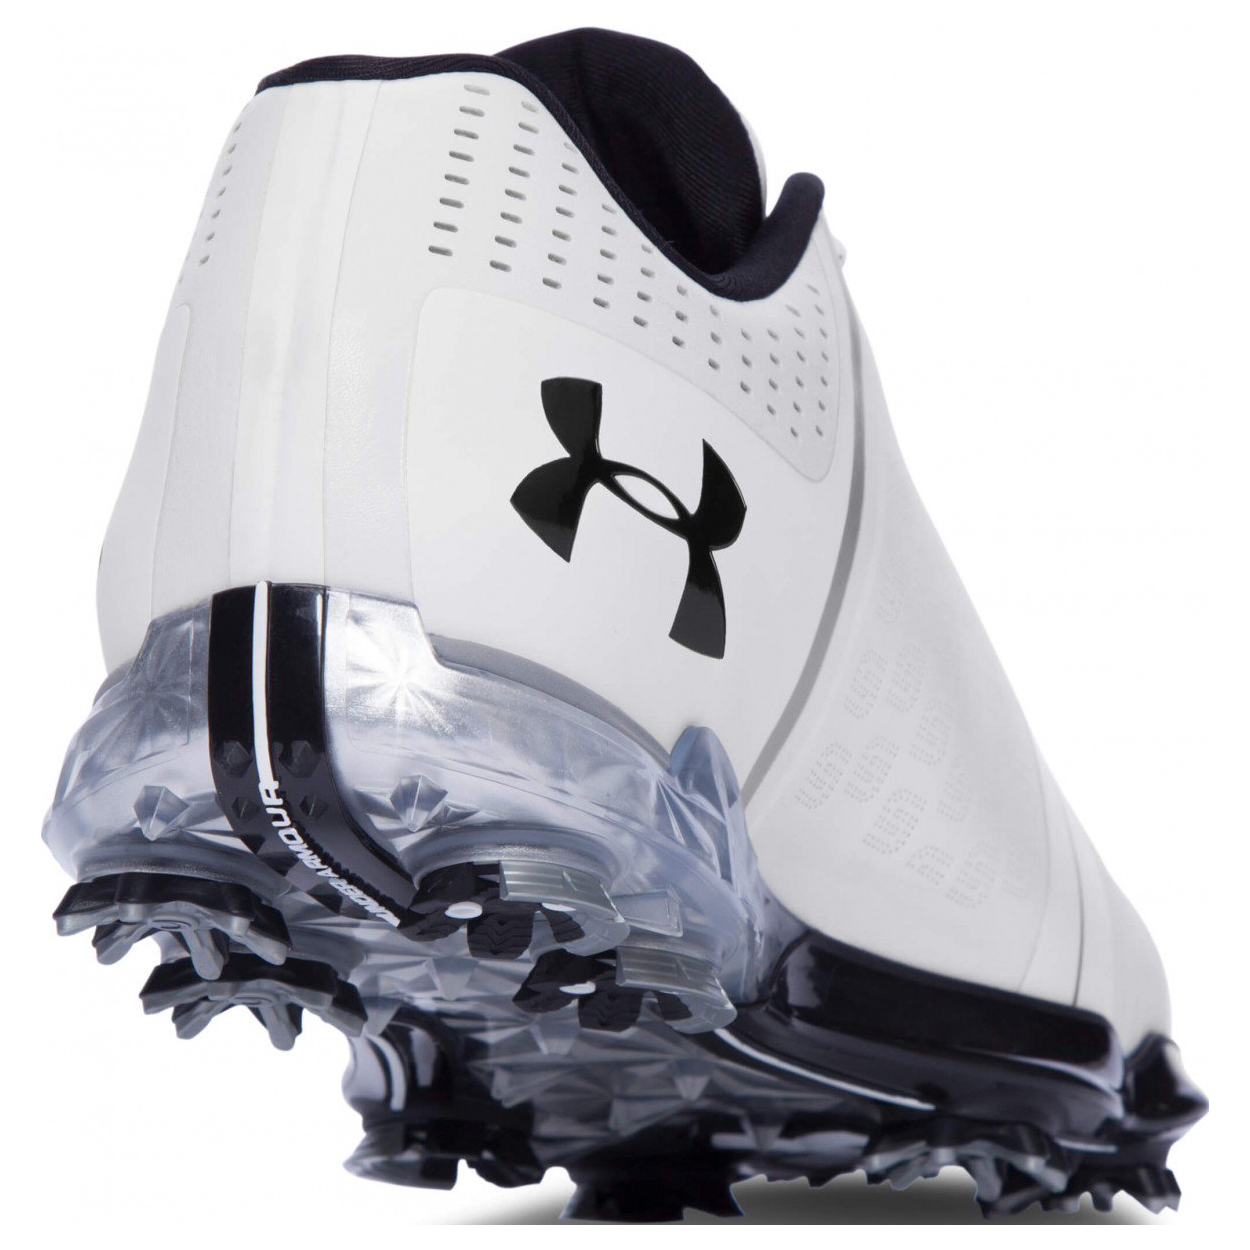 Under-Armour-Men-039-s-Spieth-I-Golf-Shoes-Brand-New thumbnail 8